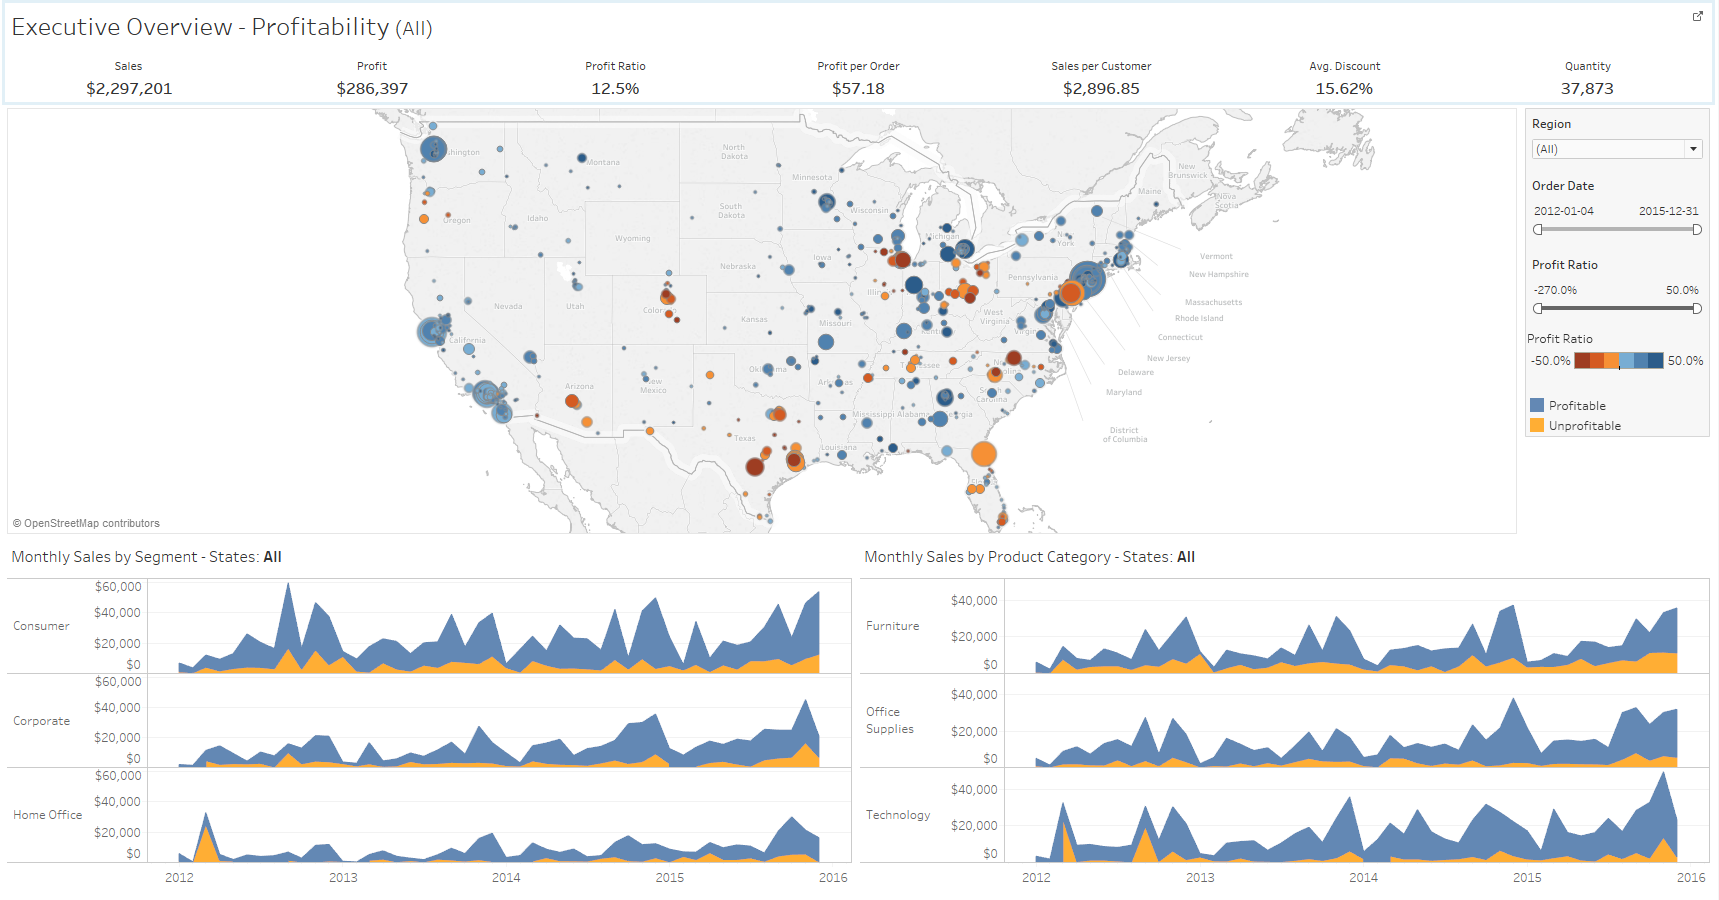 tableau-software-bi-tool-for-analytics-using-graphs-and-data-visualization-dashboard-example@2x